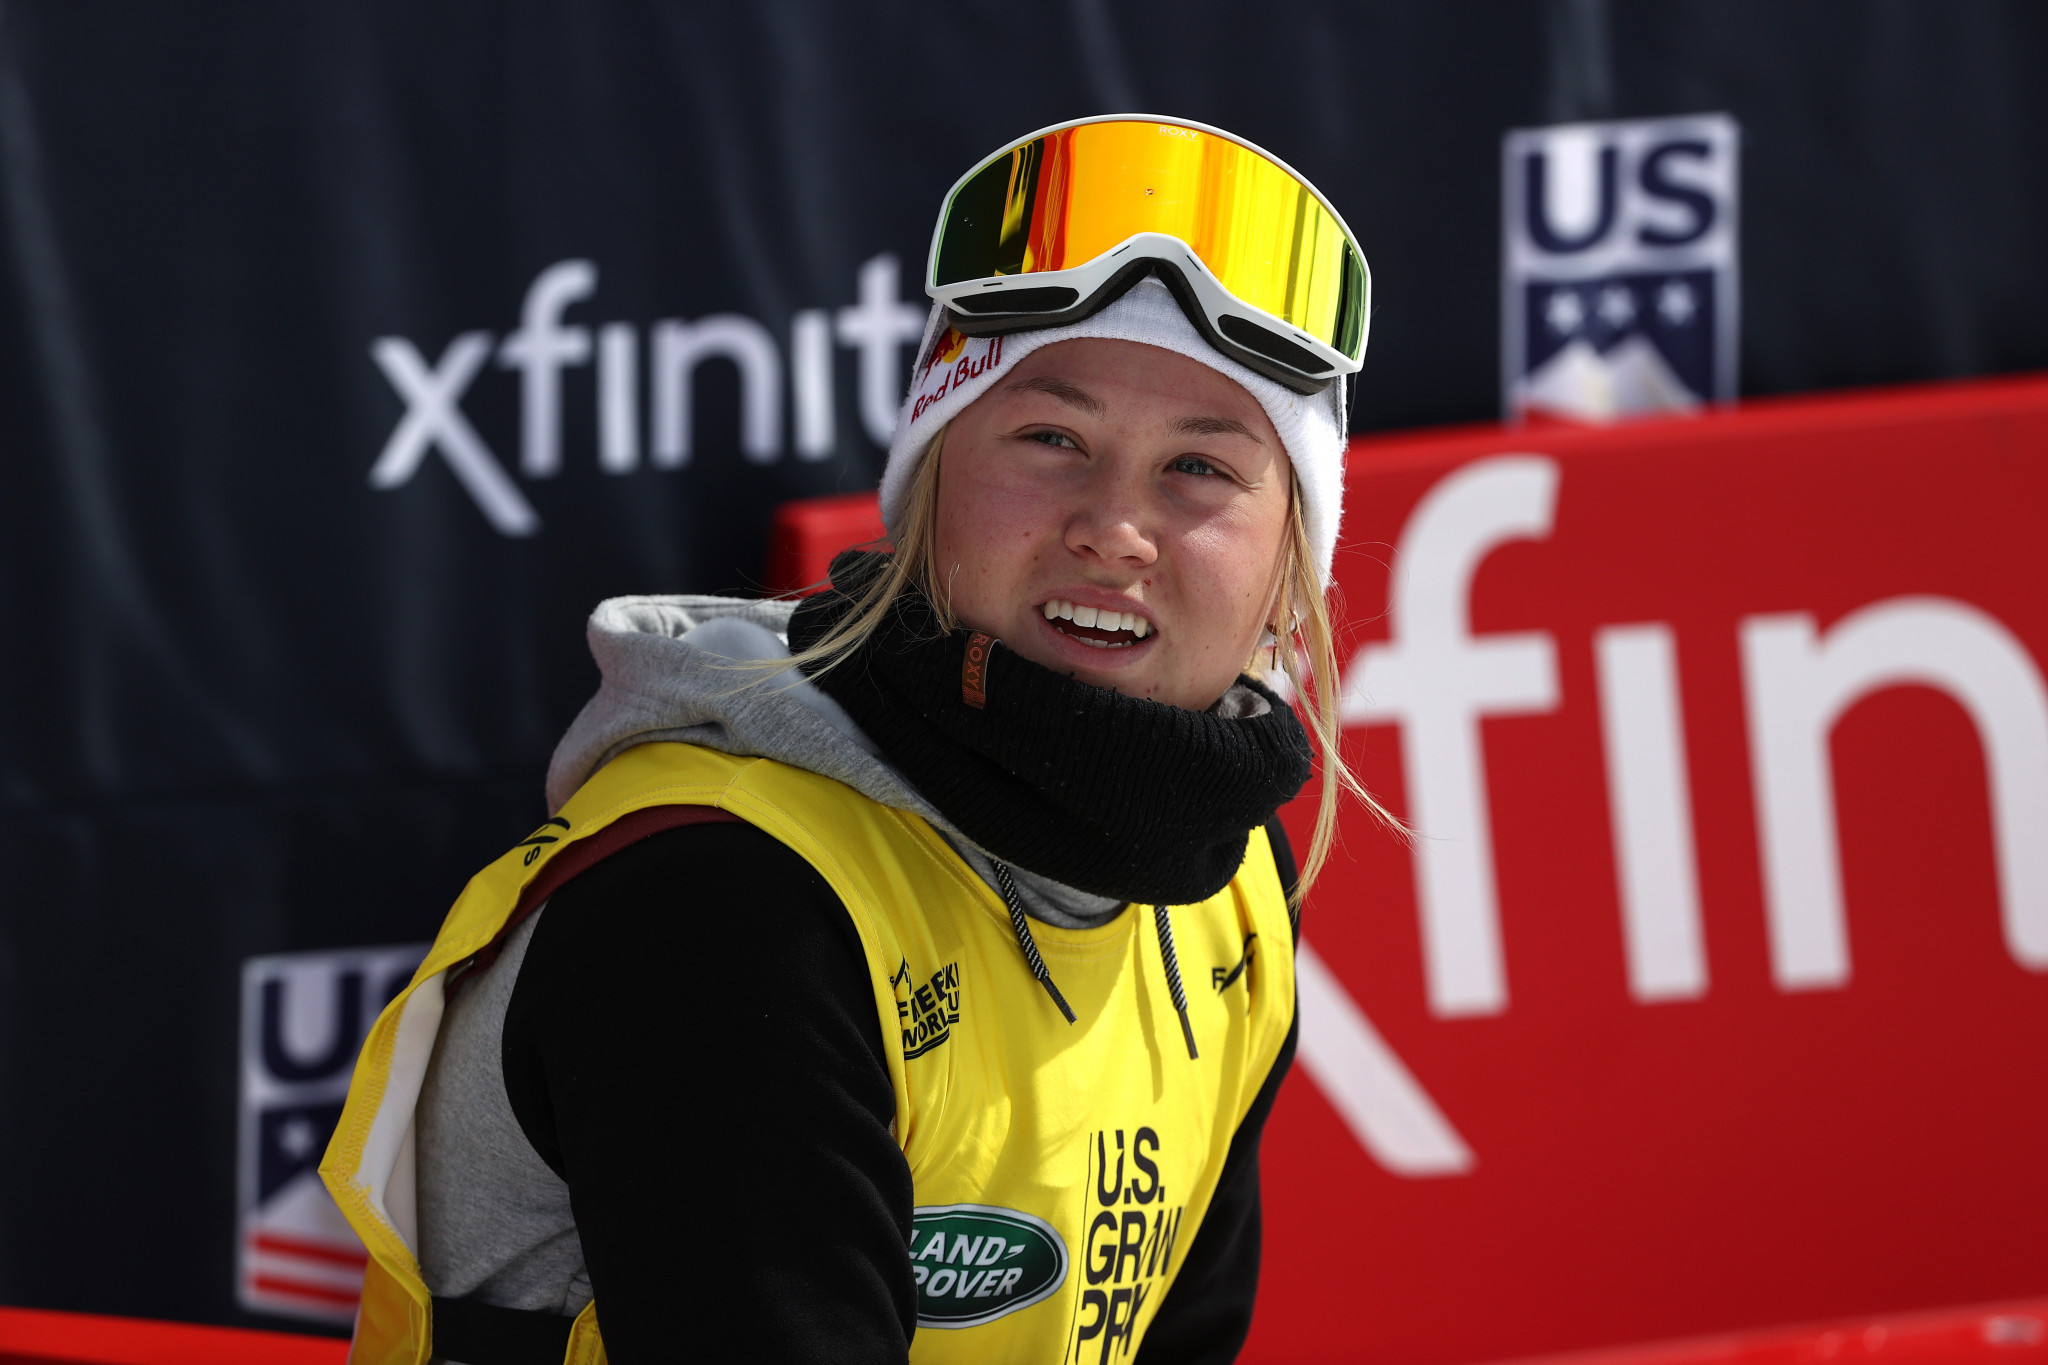 Ledeux and Stevenson secure slopestyle World Cup titles with Silvaplana wins